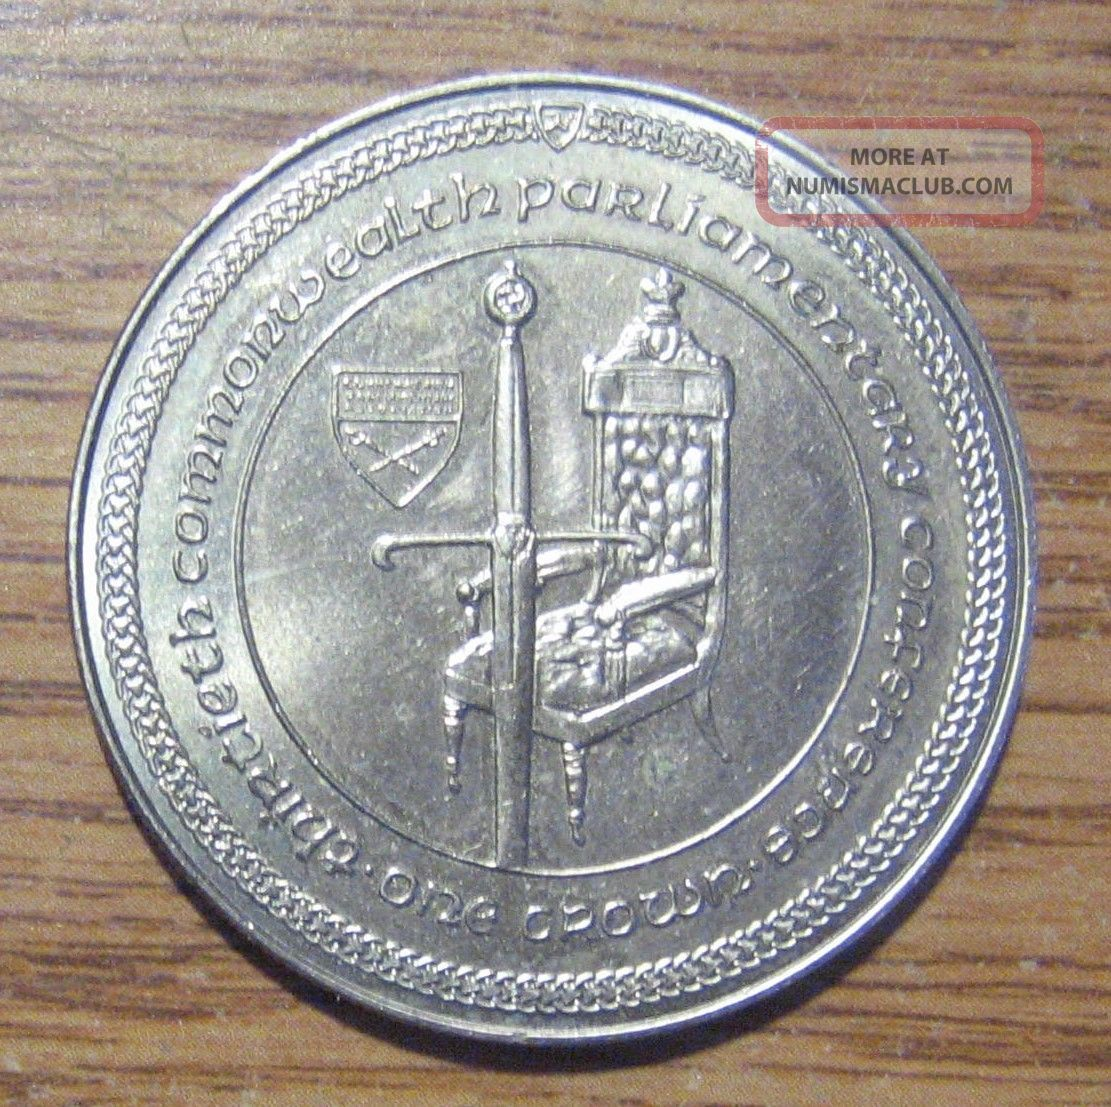 1984 Isle Of Man Crown Take A Look Coins: World photo